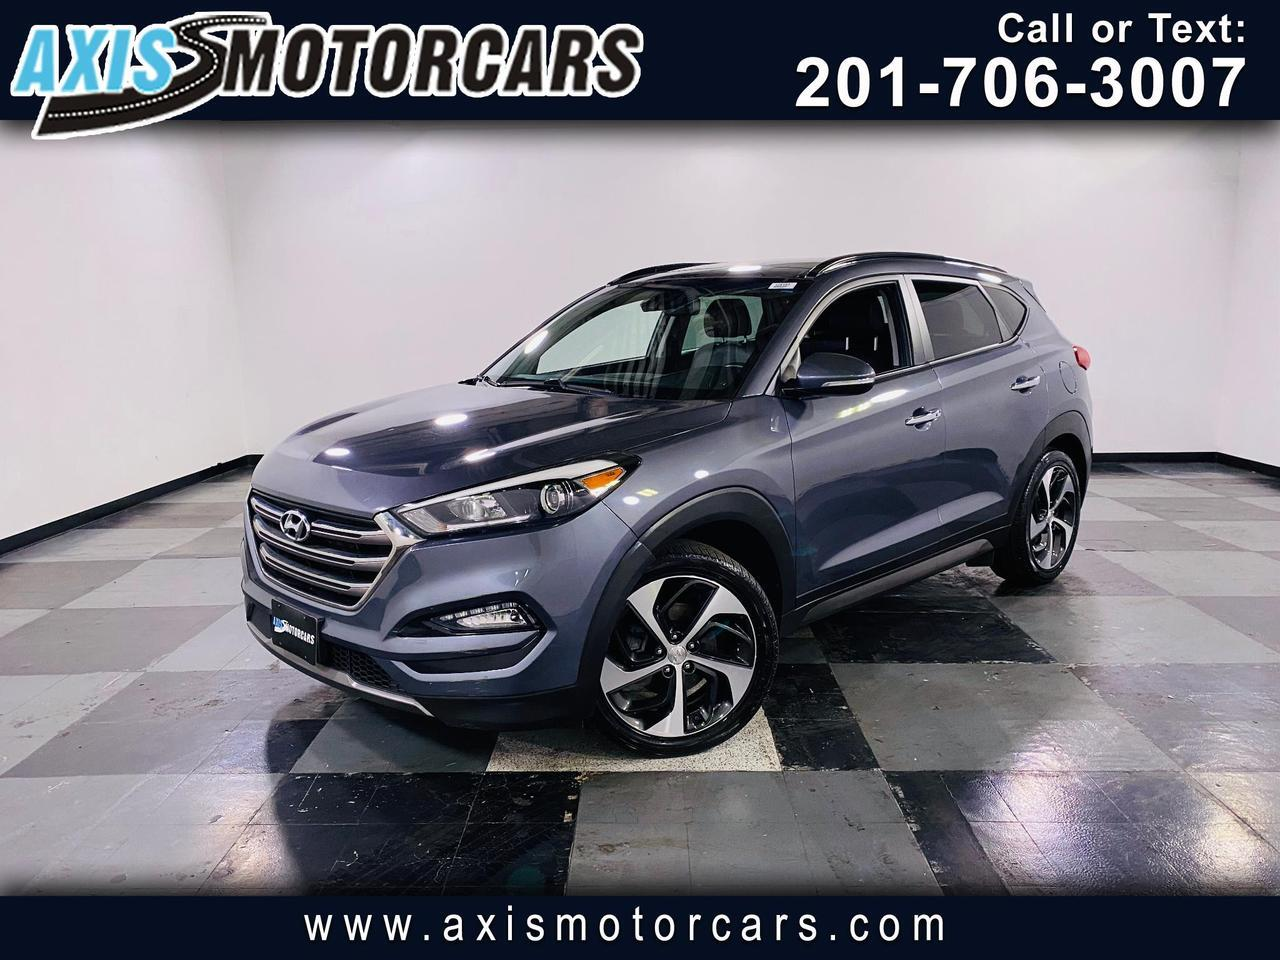 2016 Hyundai Tucson AWD Limited 1.6T w/Backup Camera Navigation Panora Jersey City NJ